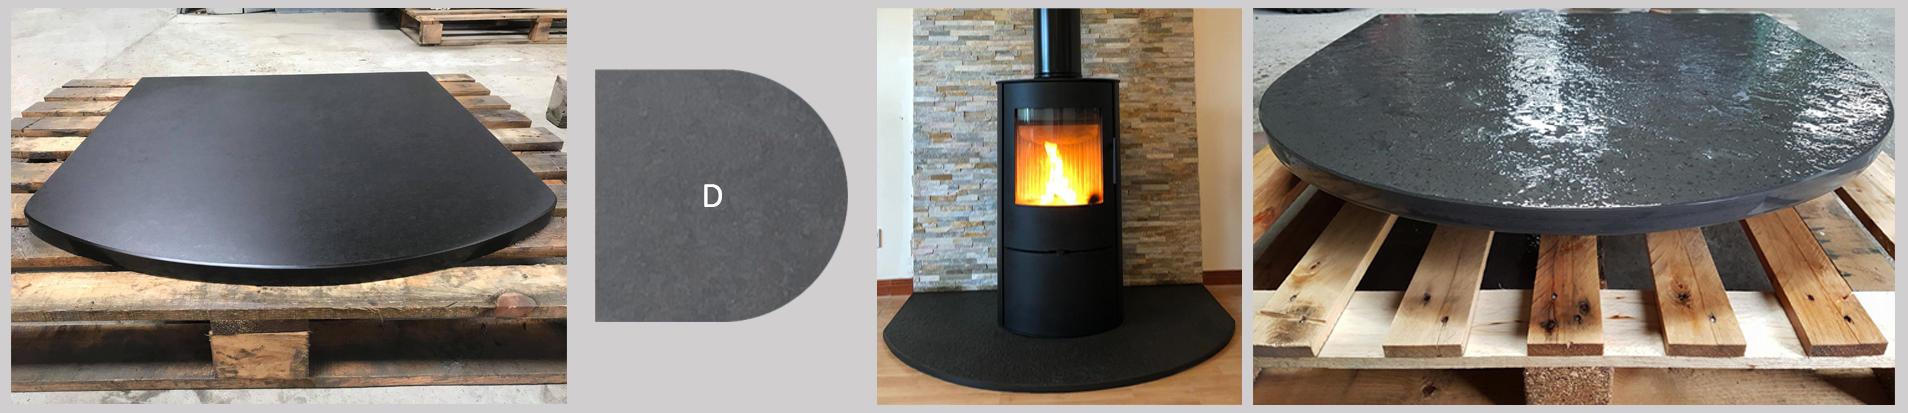 Norse Stone D Caithness Flagstone Hearth